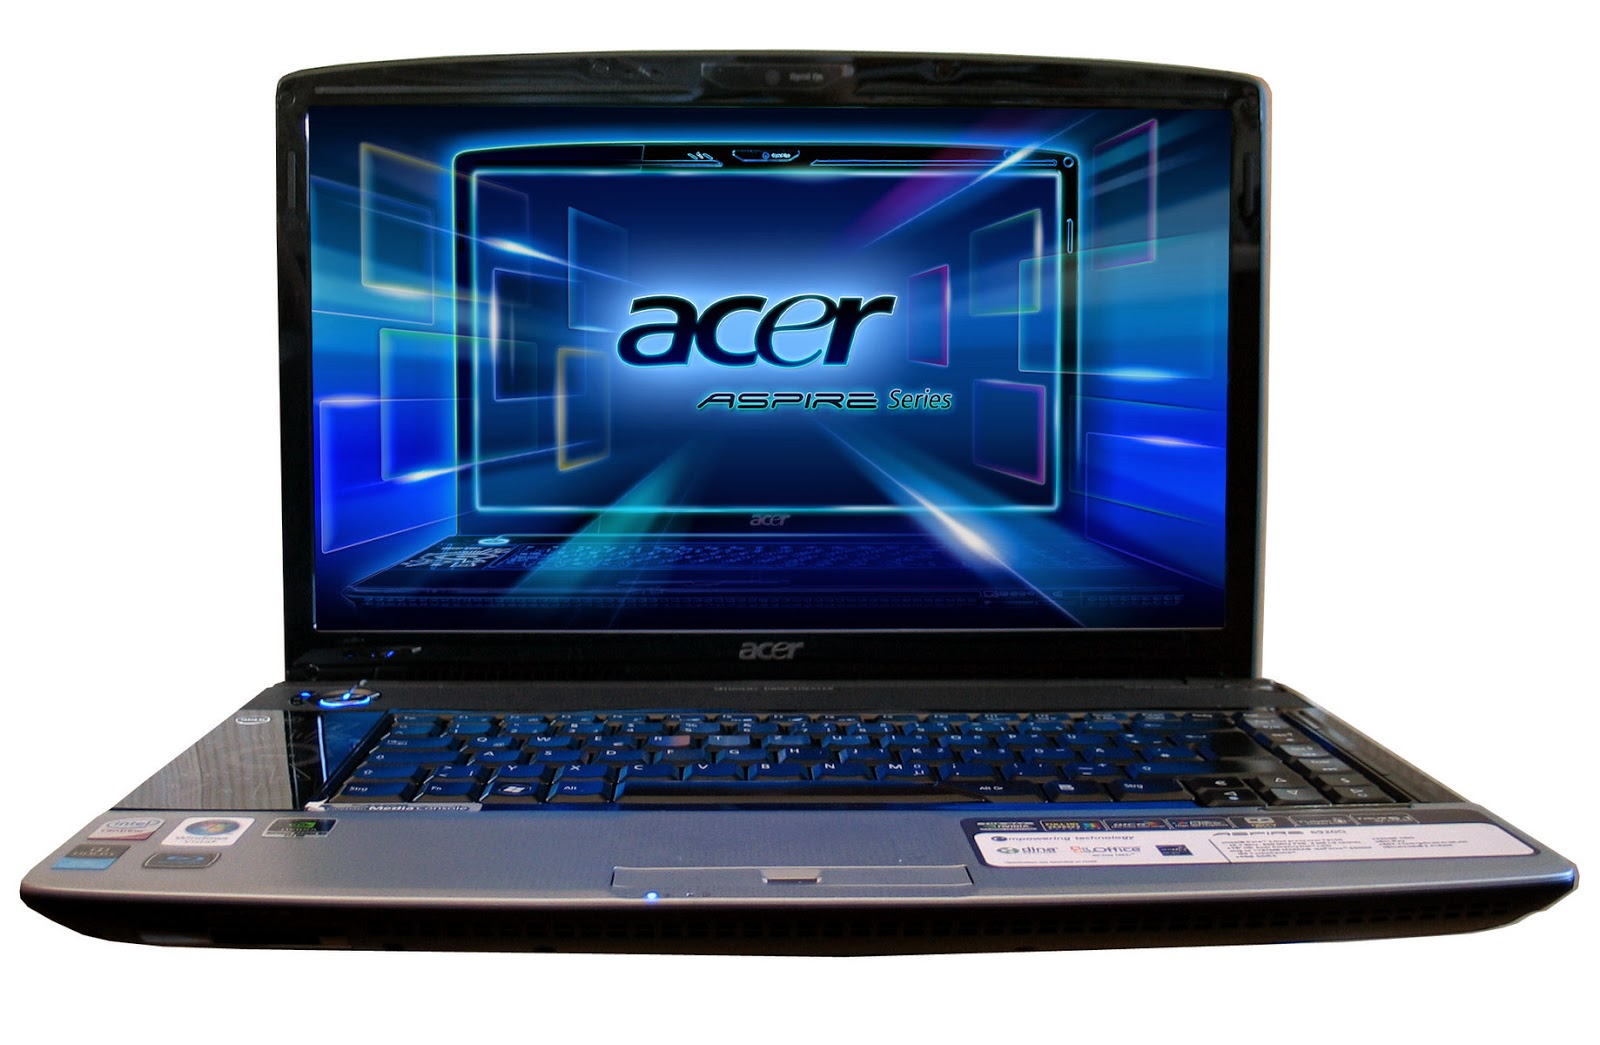 Acer Drivers Download for Windows 10, 8, 7, XP, Vista